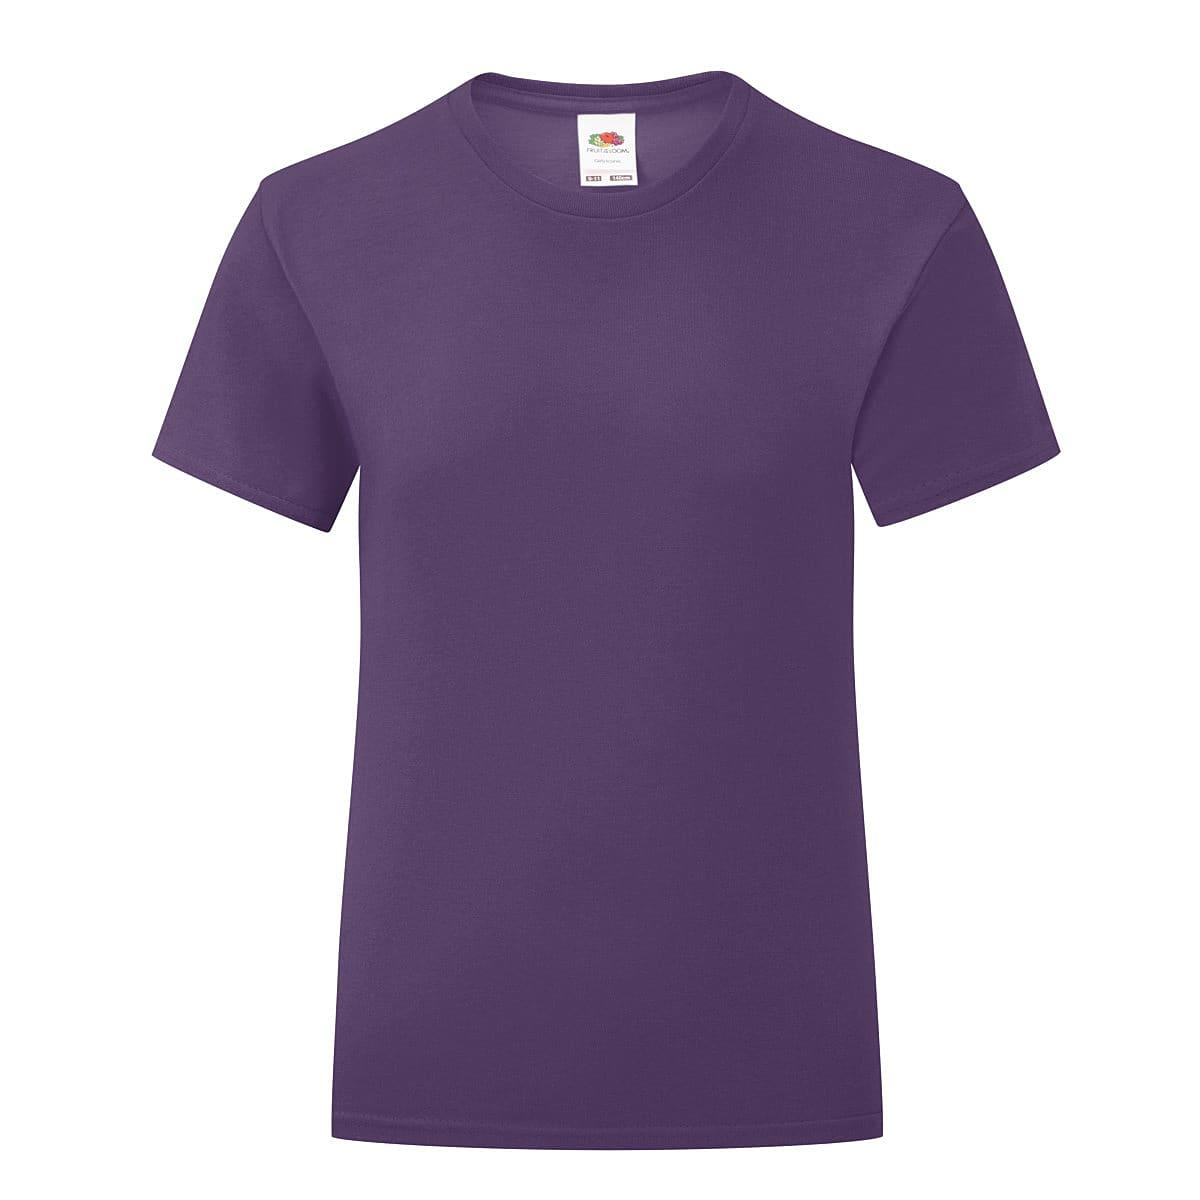 Fruit Of The Loom Girls Iconic T-Shirt in Purple (Product Code: 61025)